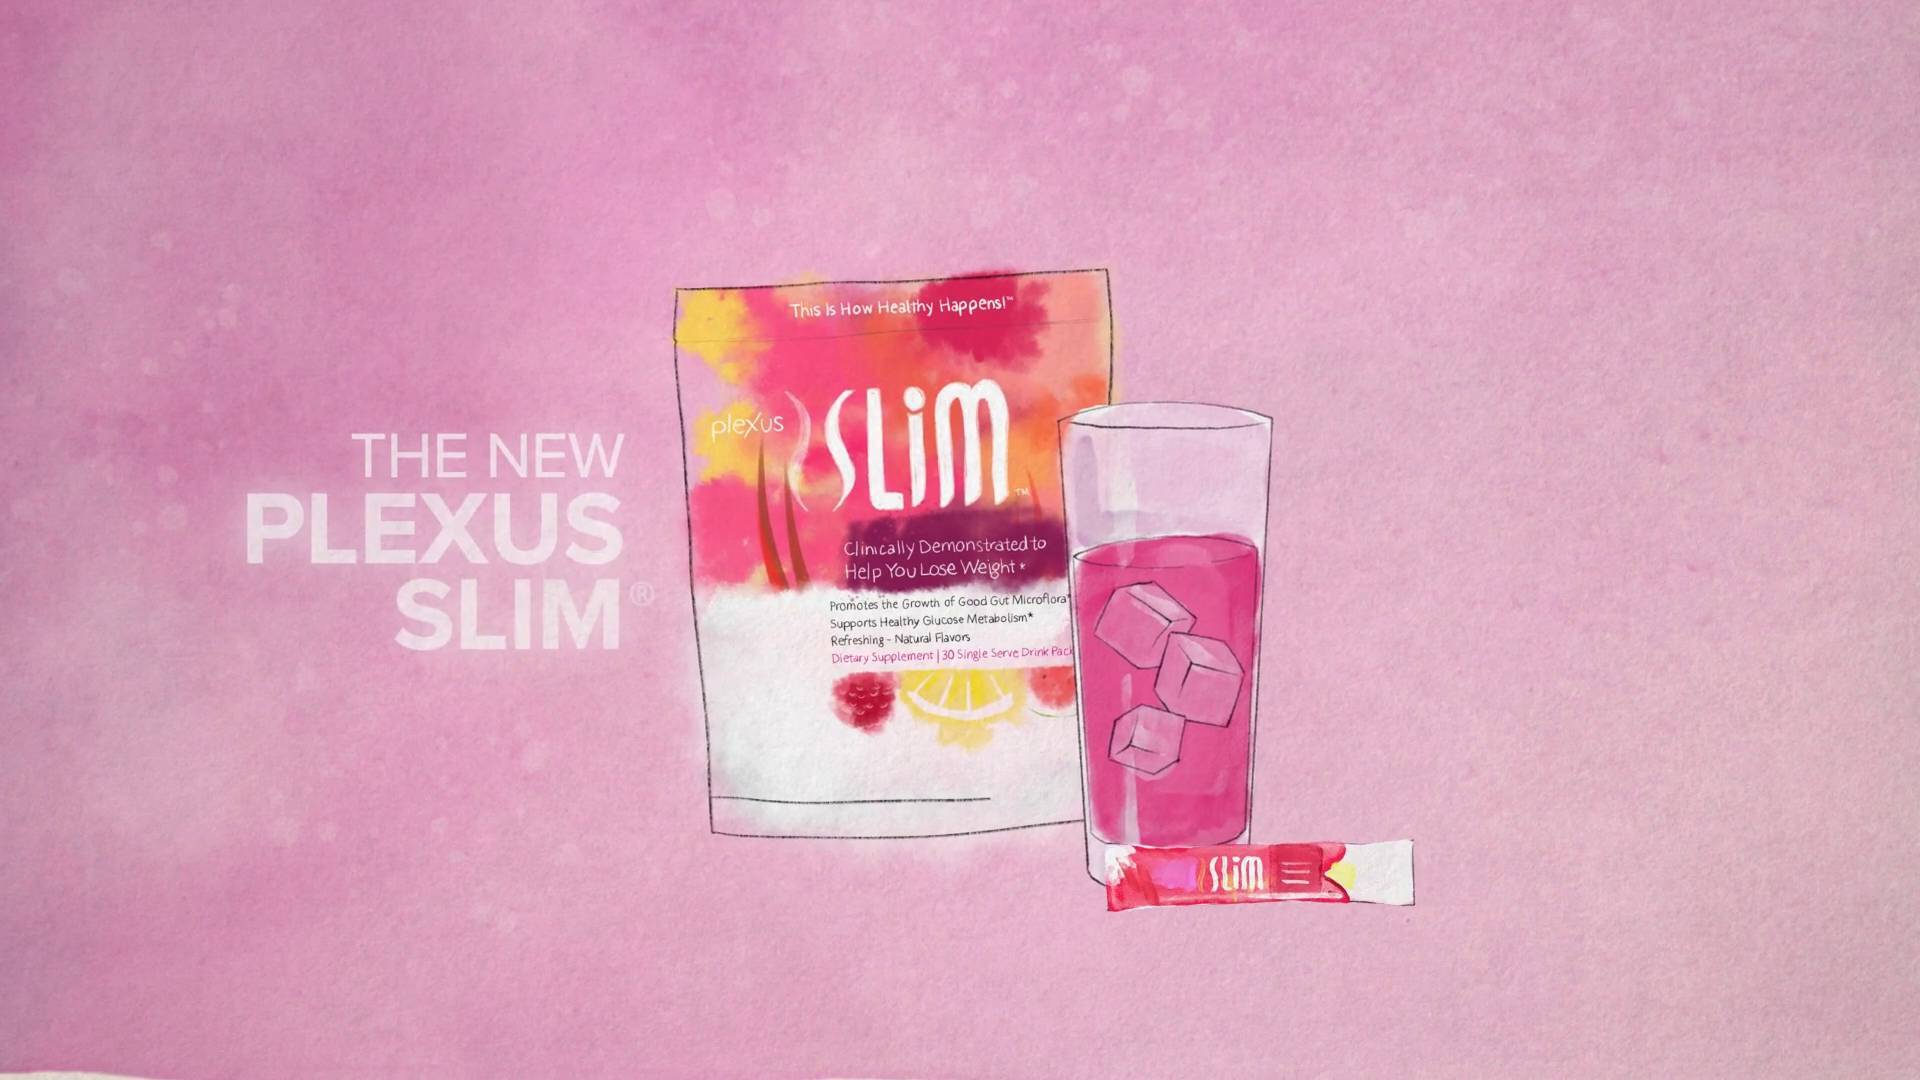 plexus worldwide product videos